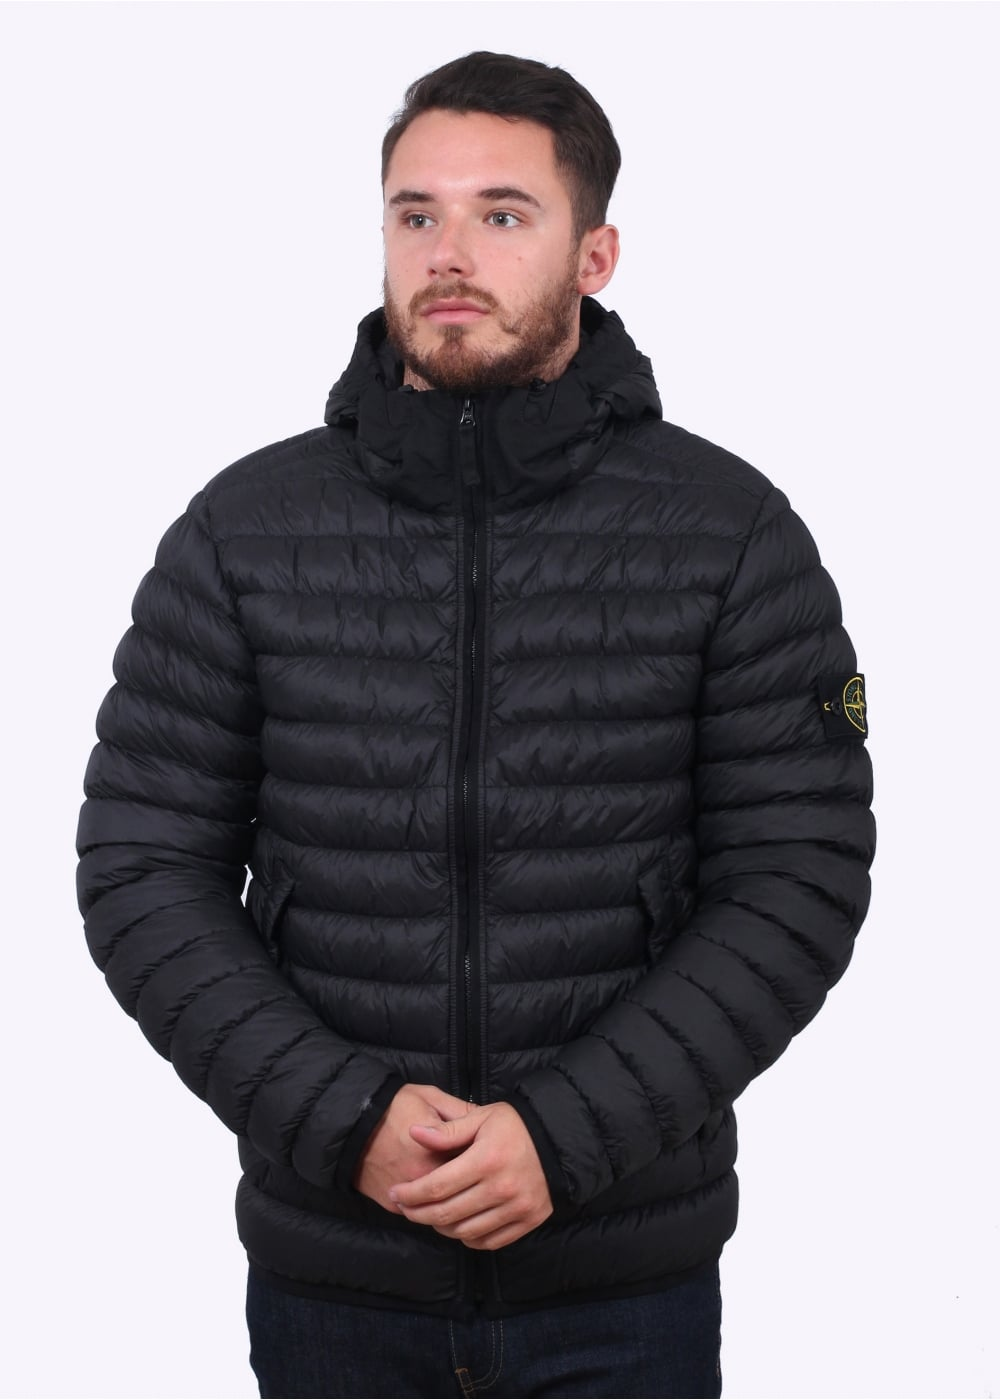 stone island micro yarn down jacket black jackets from triads uk. Black Bedroom Furniture Sets. Home Design Ideas